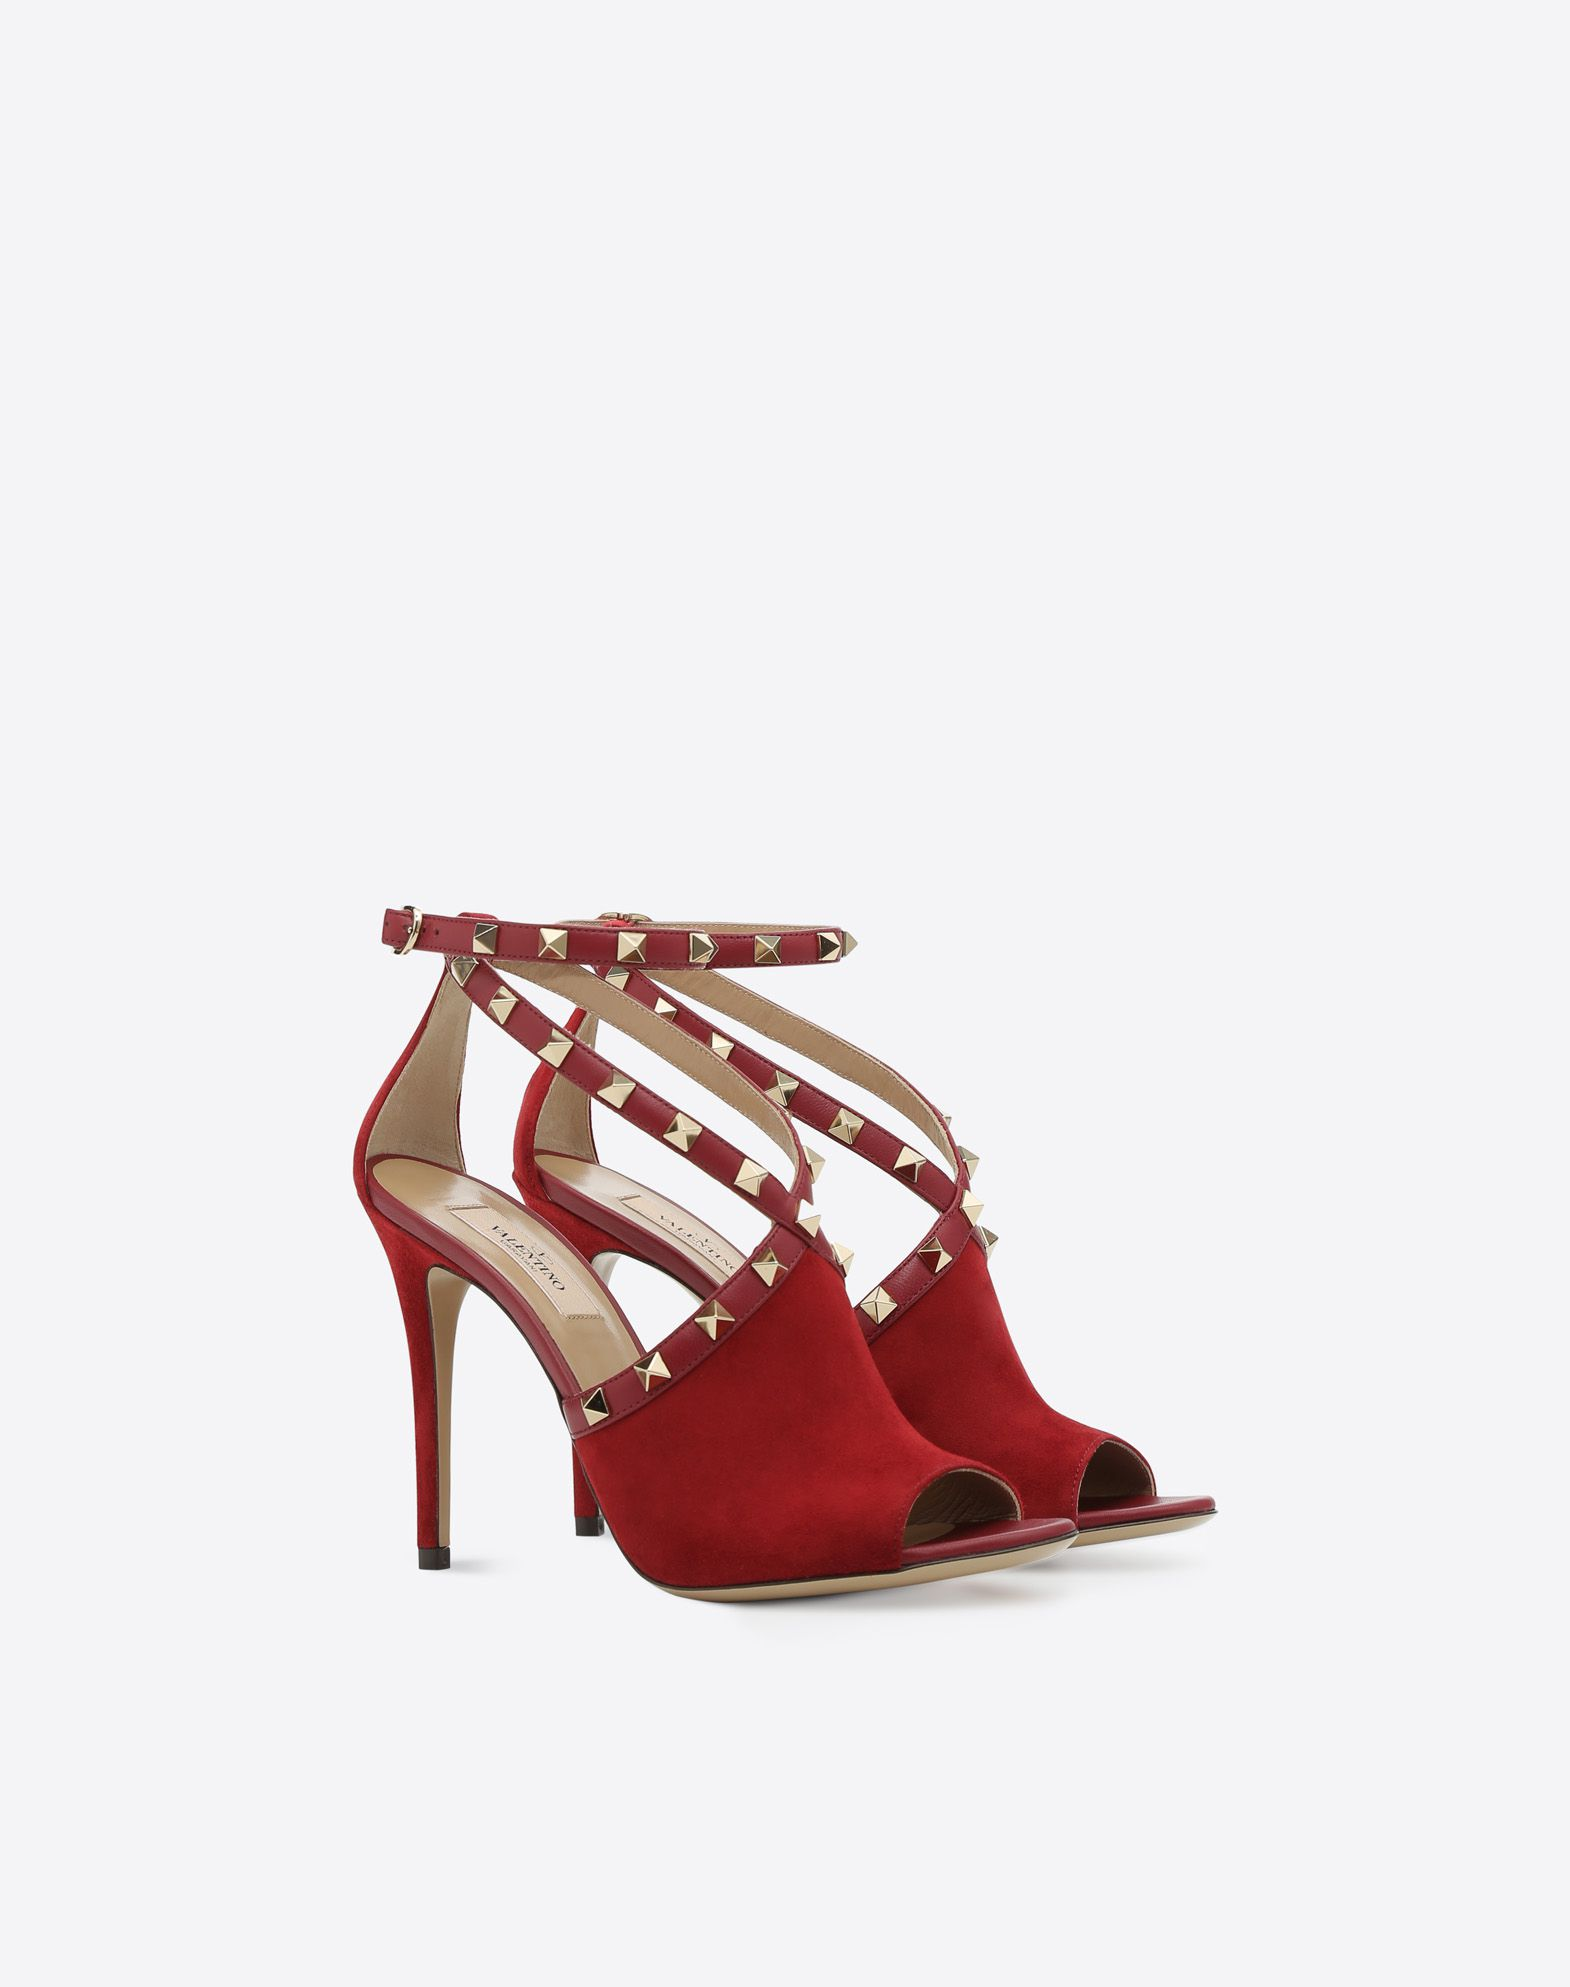 VALENTINO Suede effect Round toeline Solid colour Leather sole Buckling ankle strap closure Spike heel  45388164ev